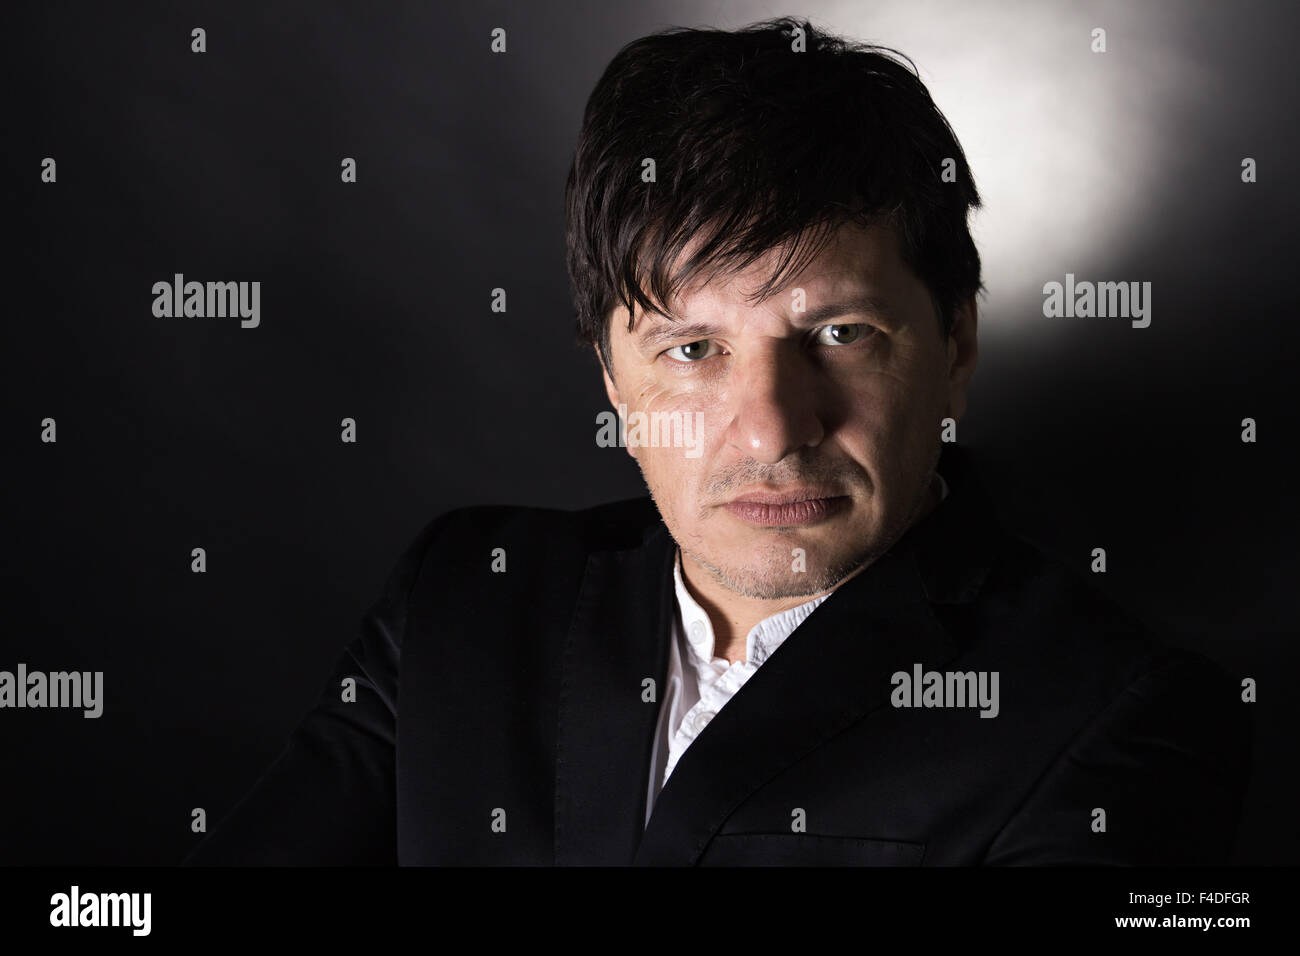 Handsome man in his 40's looking in the camera with a serious attitude. Wearing white shirt and a black jacket. Stock Photo